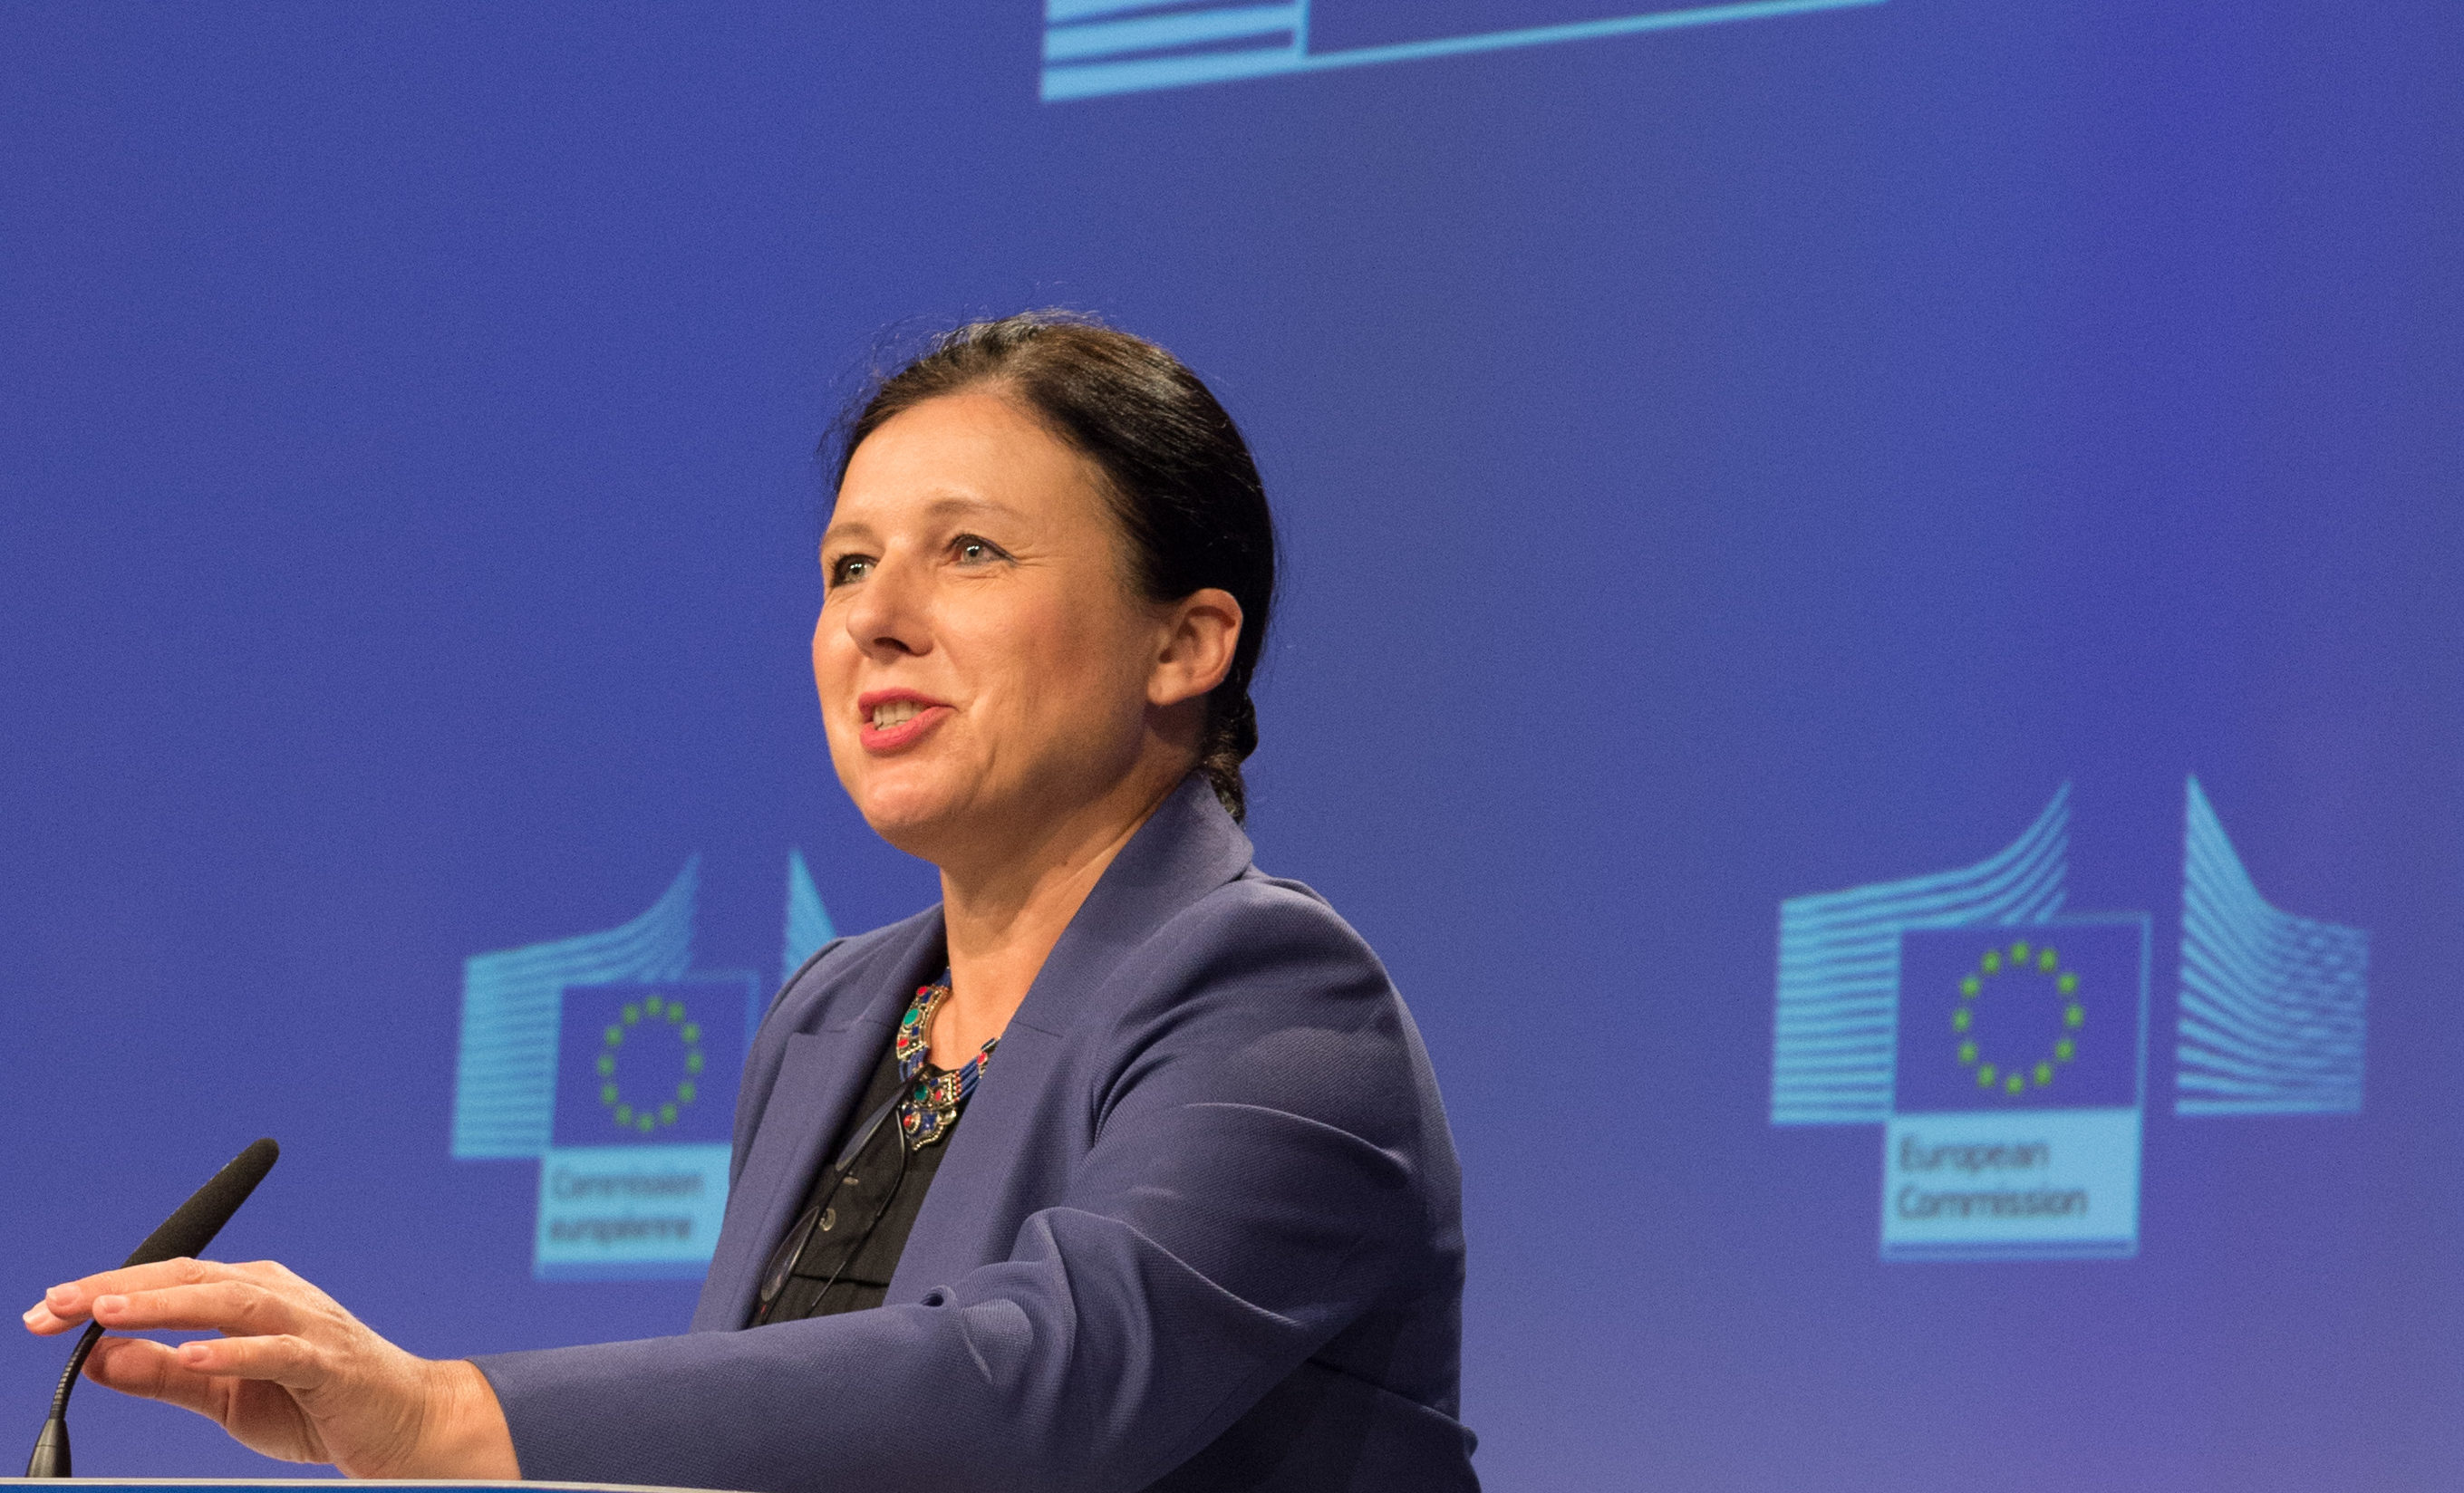 European Union agrees on bitcoin platform rules to curb money laundering